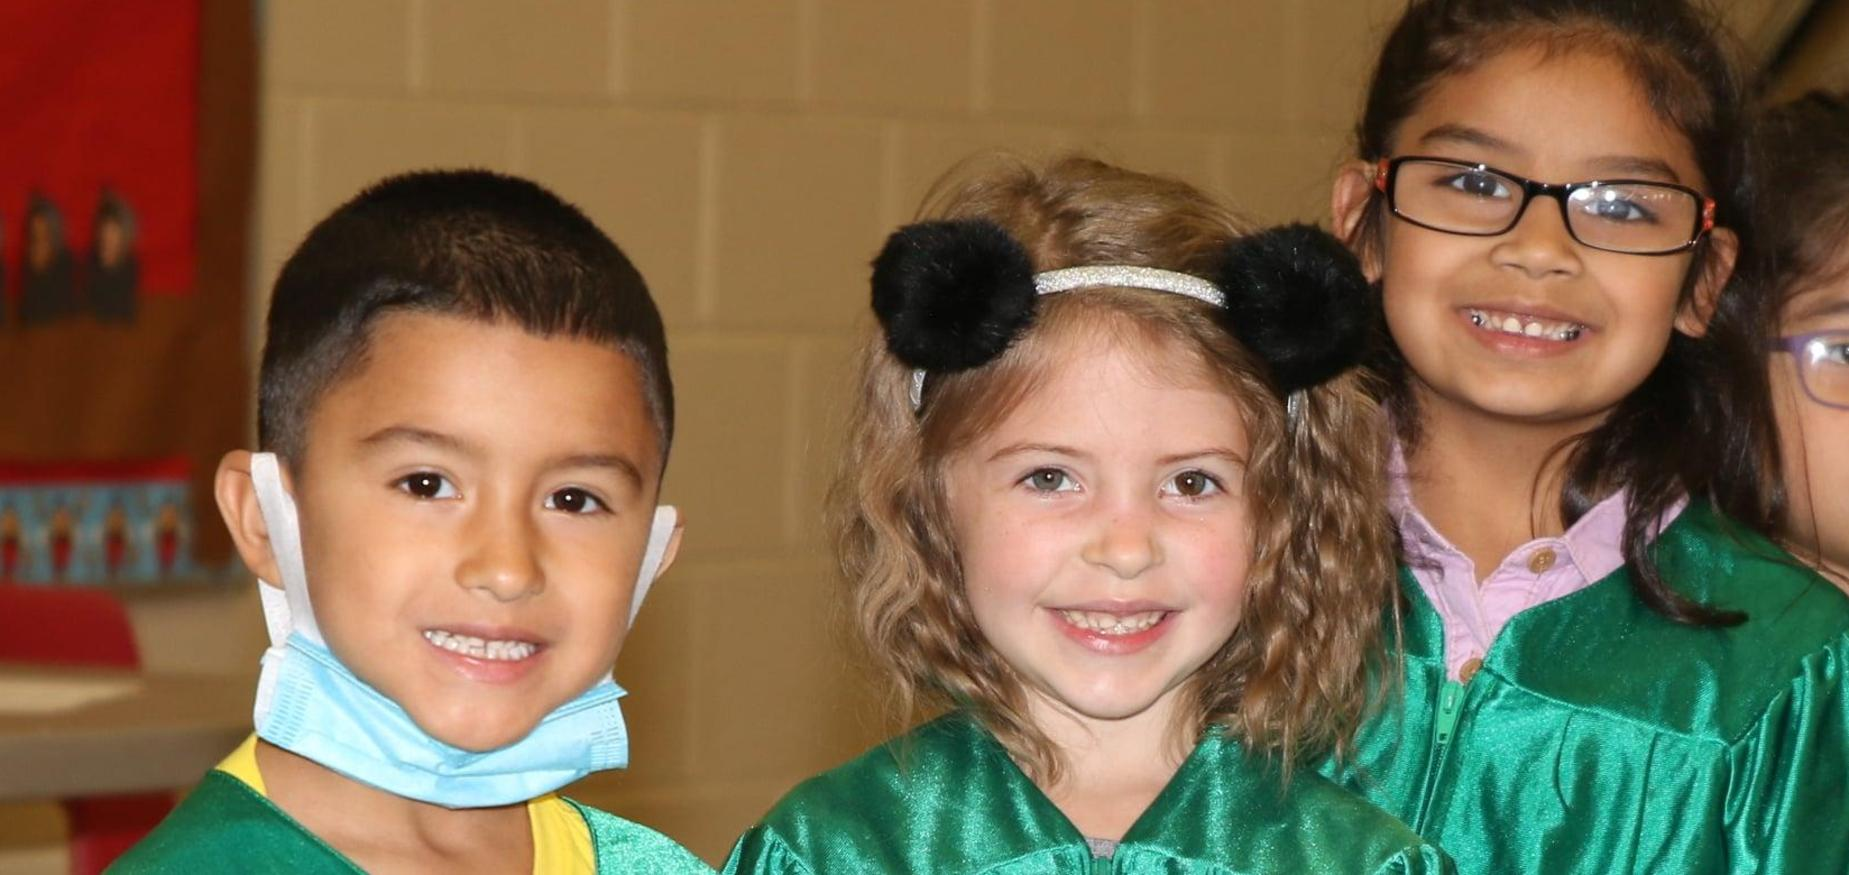 Kindergarten students get ready to take their graduation photos in caps and gowns!